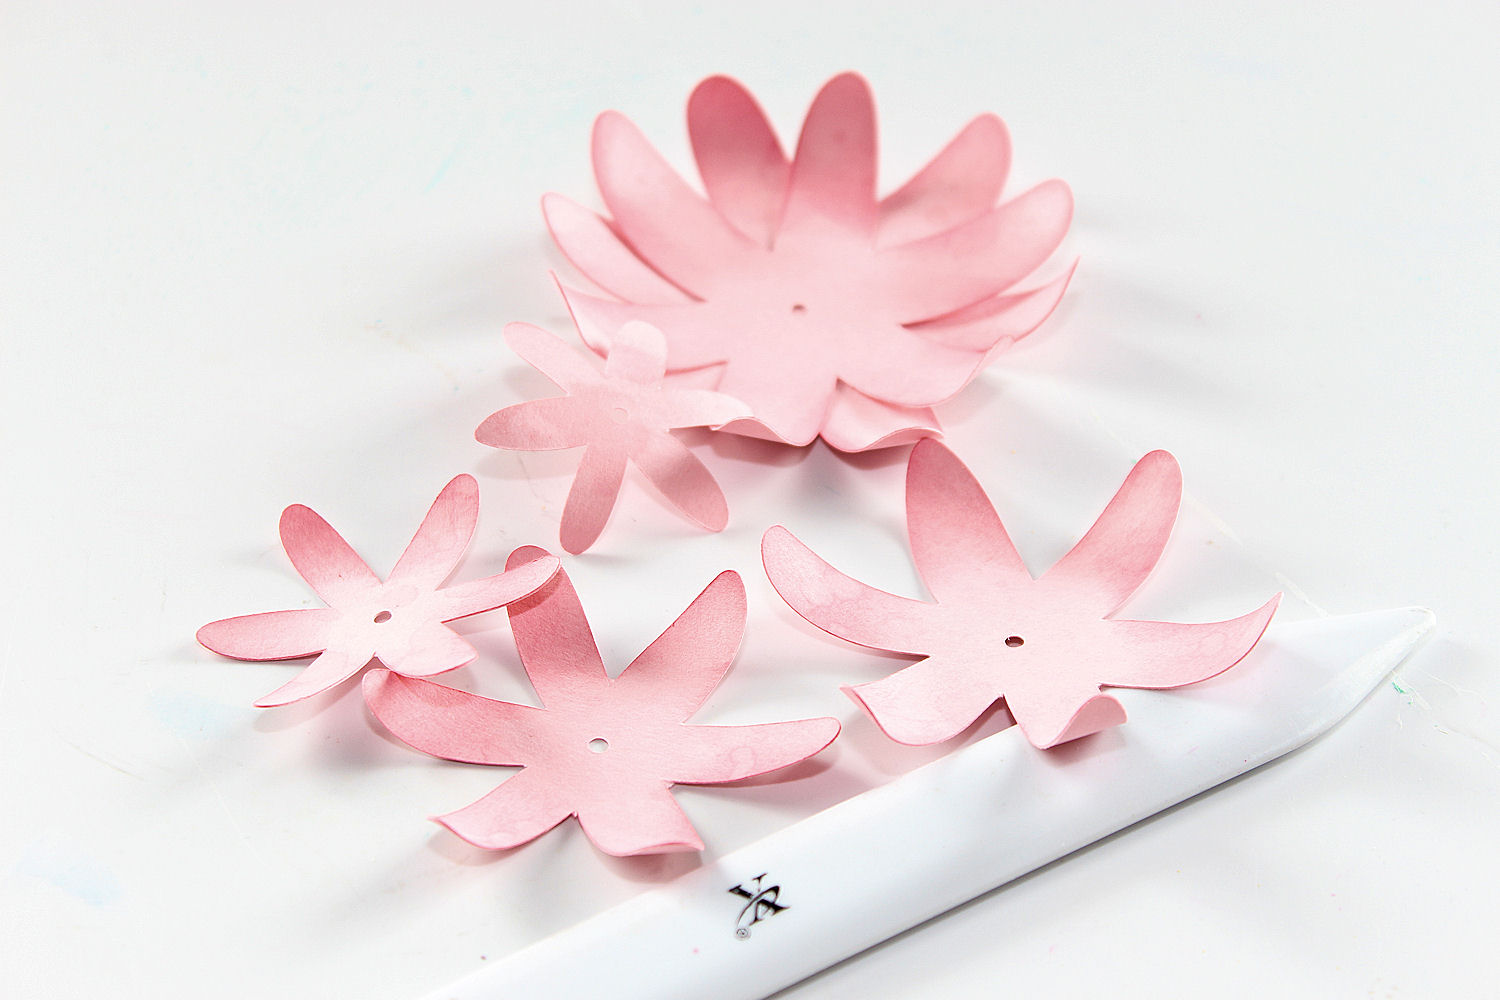 Making 3D flowers - Step 1